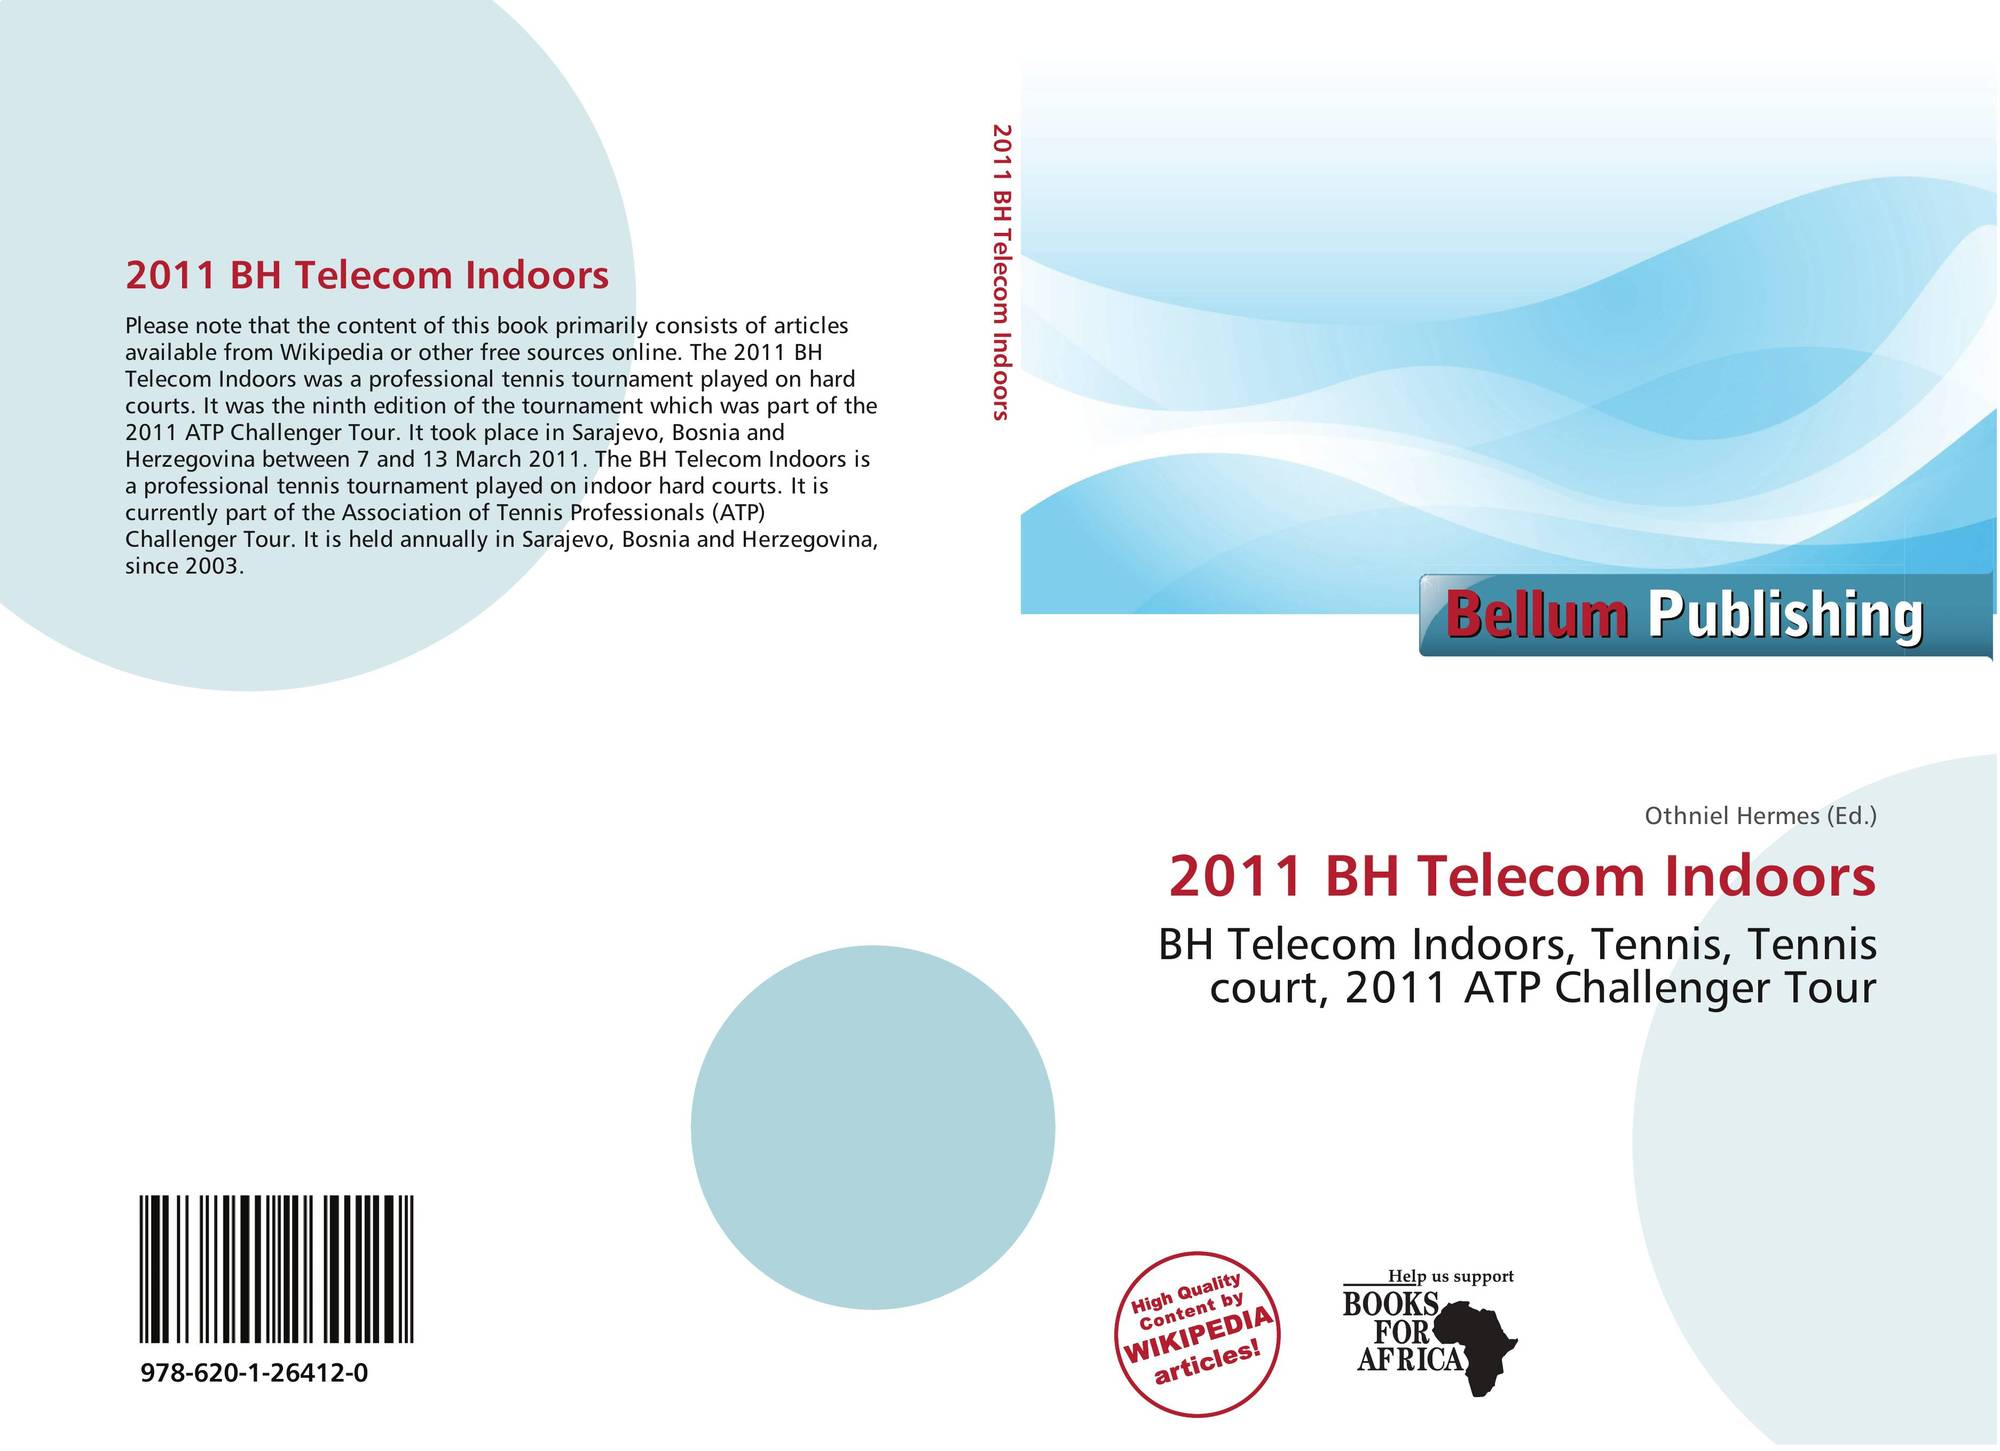 a study on the telecommunication industry In december 2005, two years after this case was written, the telecommunications industry consolidated further verizon communications acquired mci/worldcom and sbc communications acquired at&t corporation, which had been in business since the 19th century the acquisition of mci/worldcom was the.